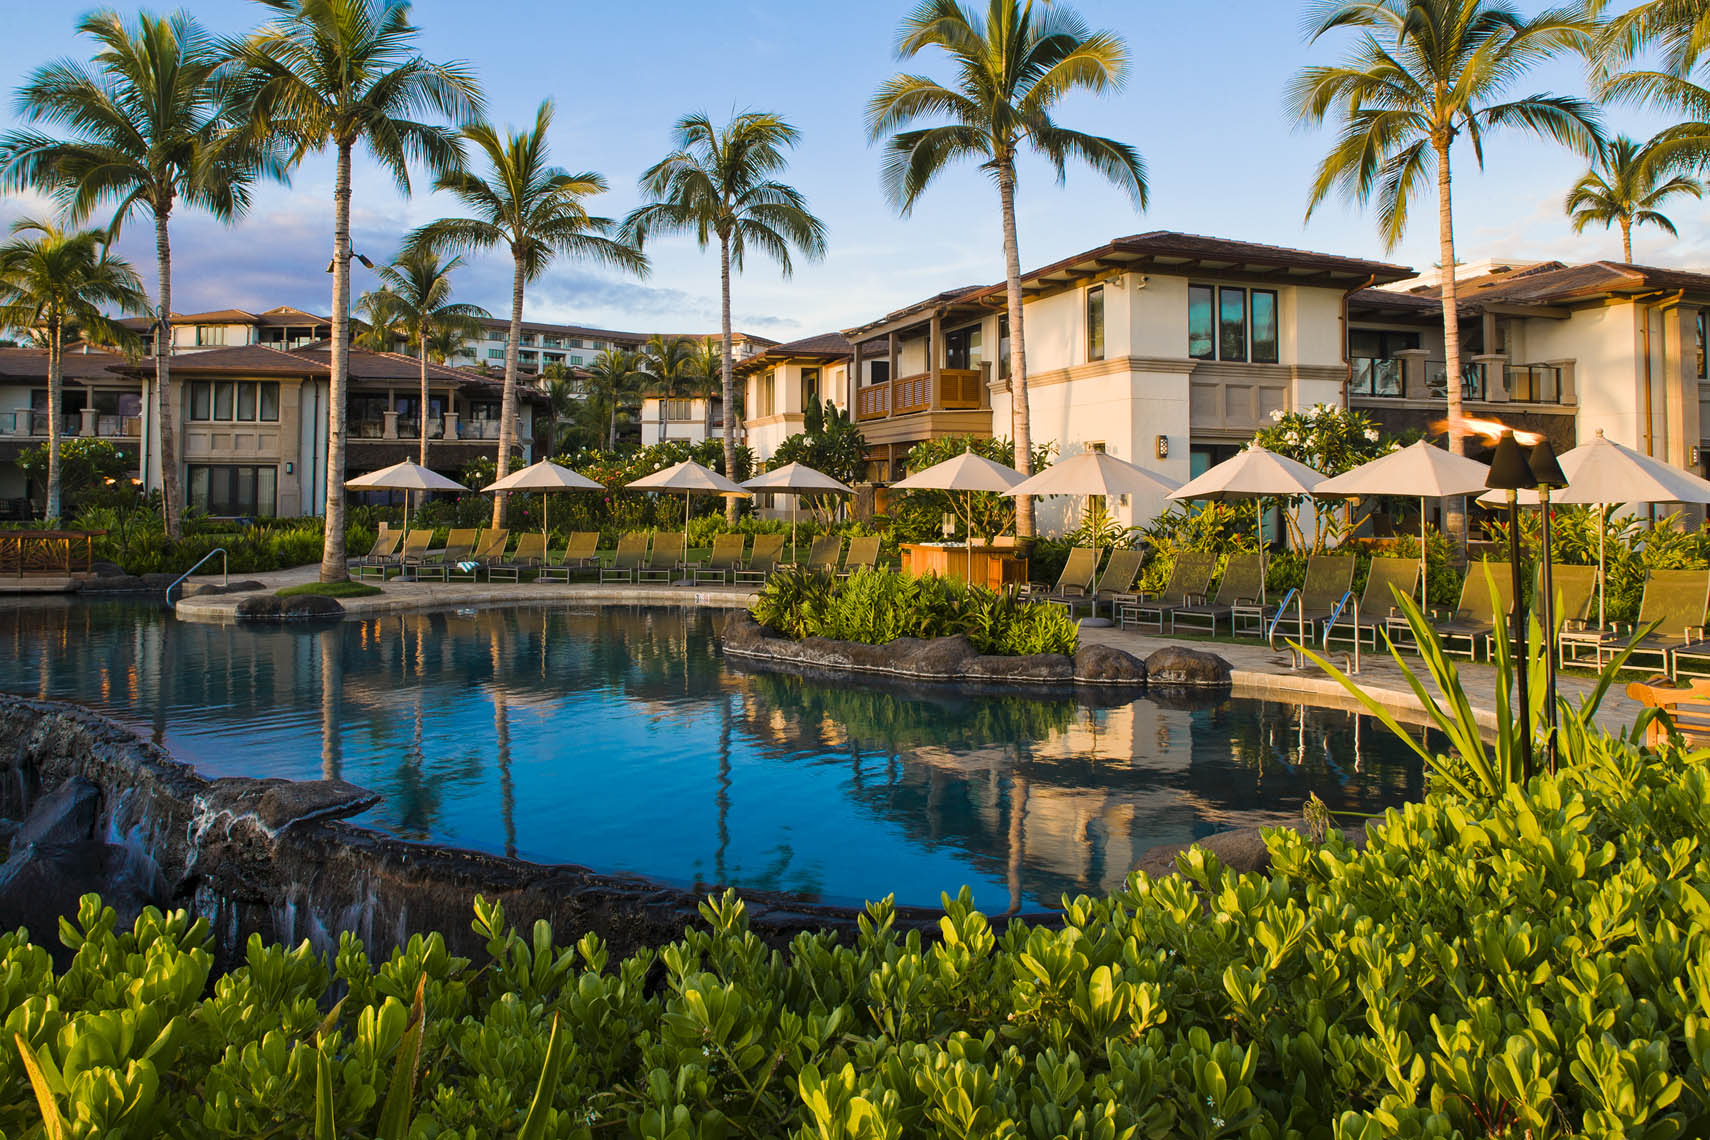 Maui resort, Hawaii